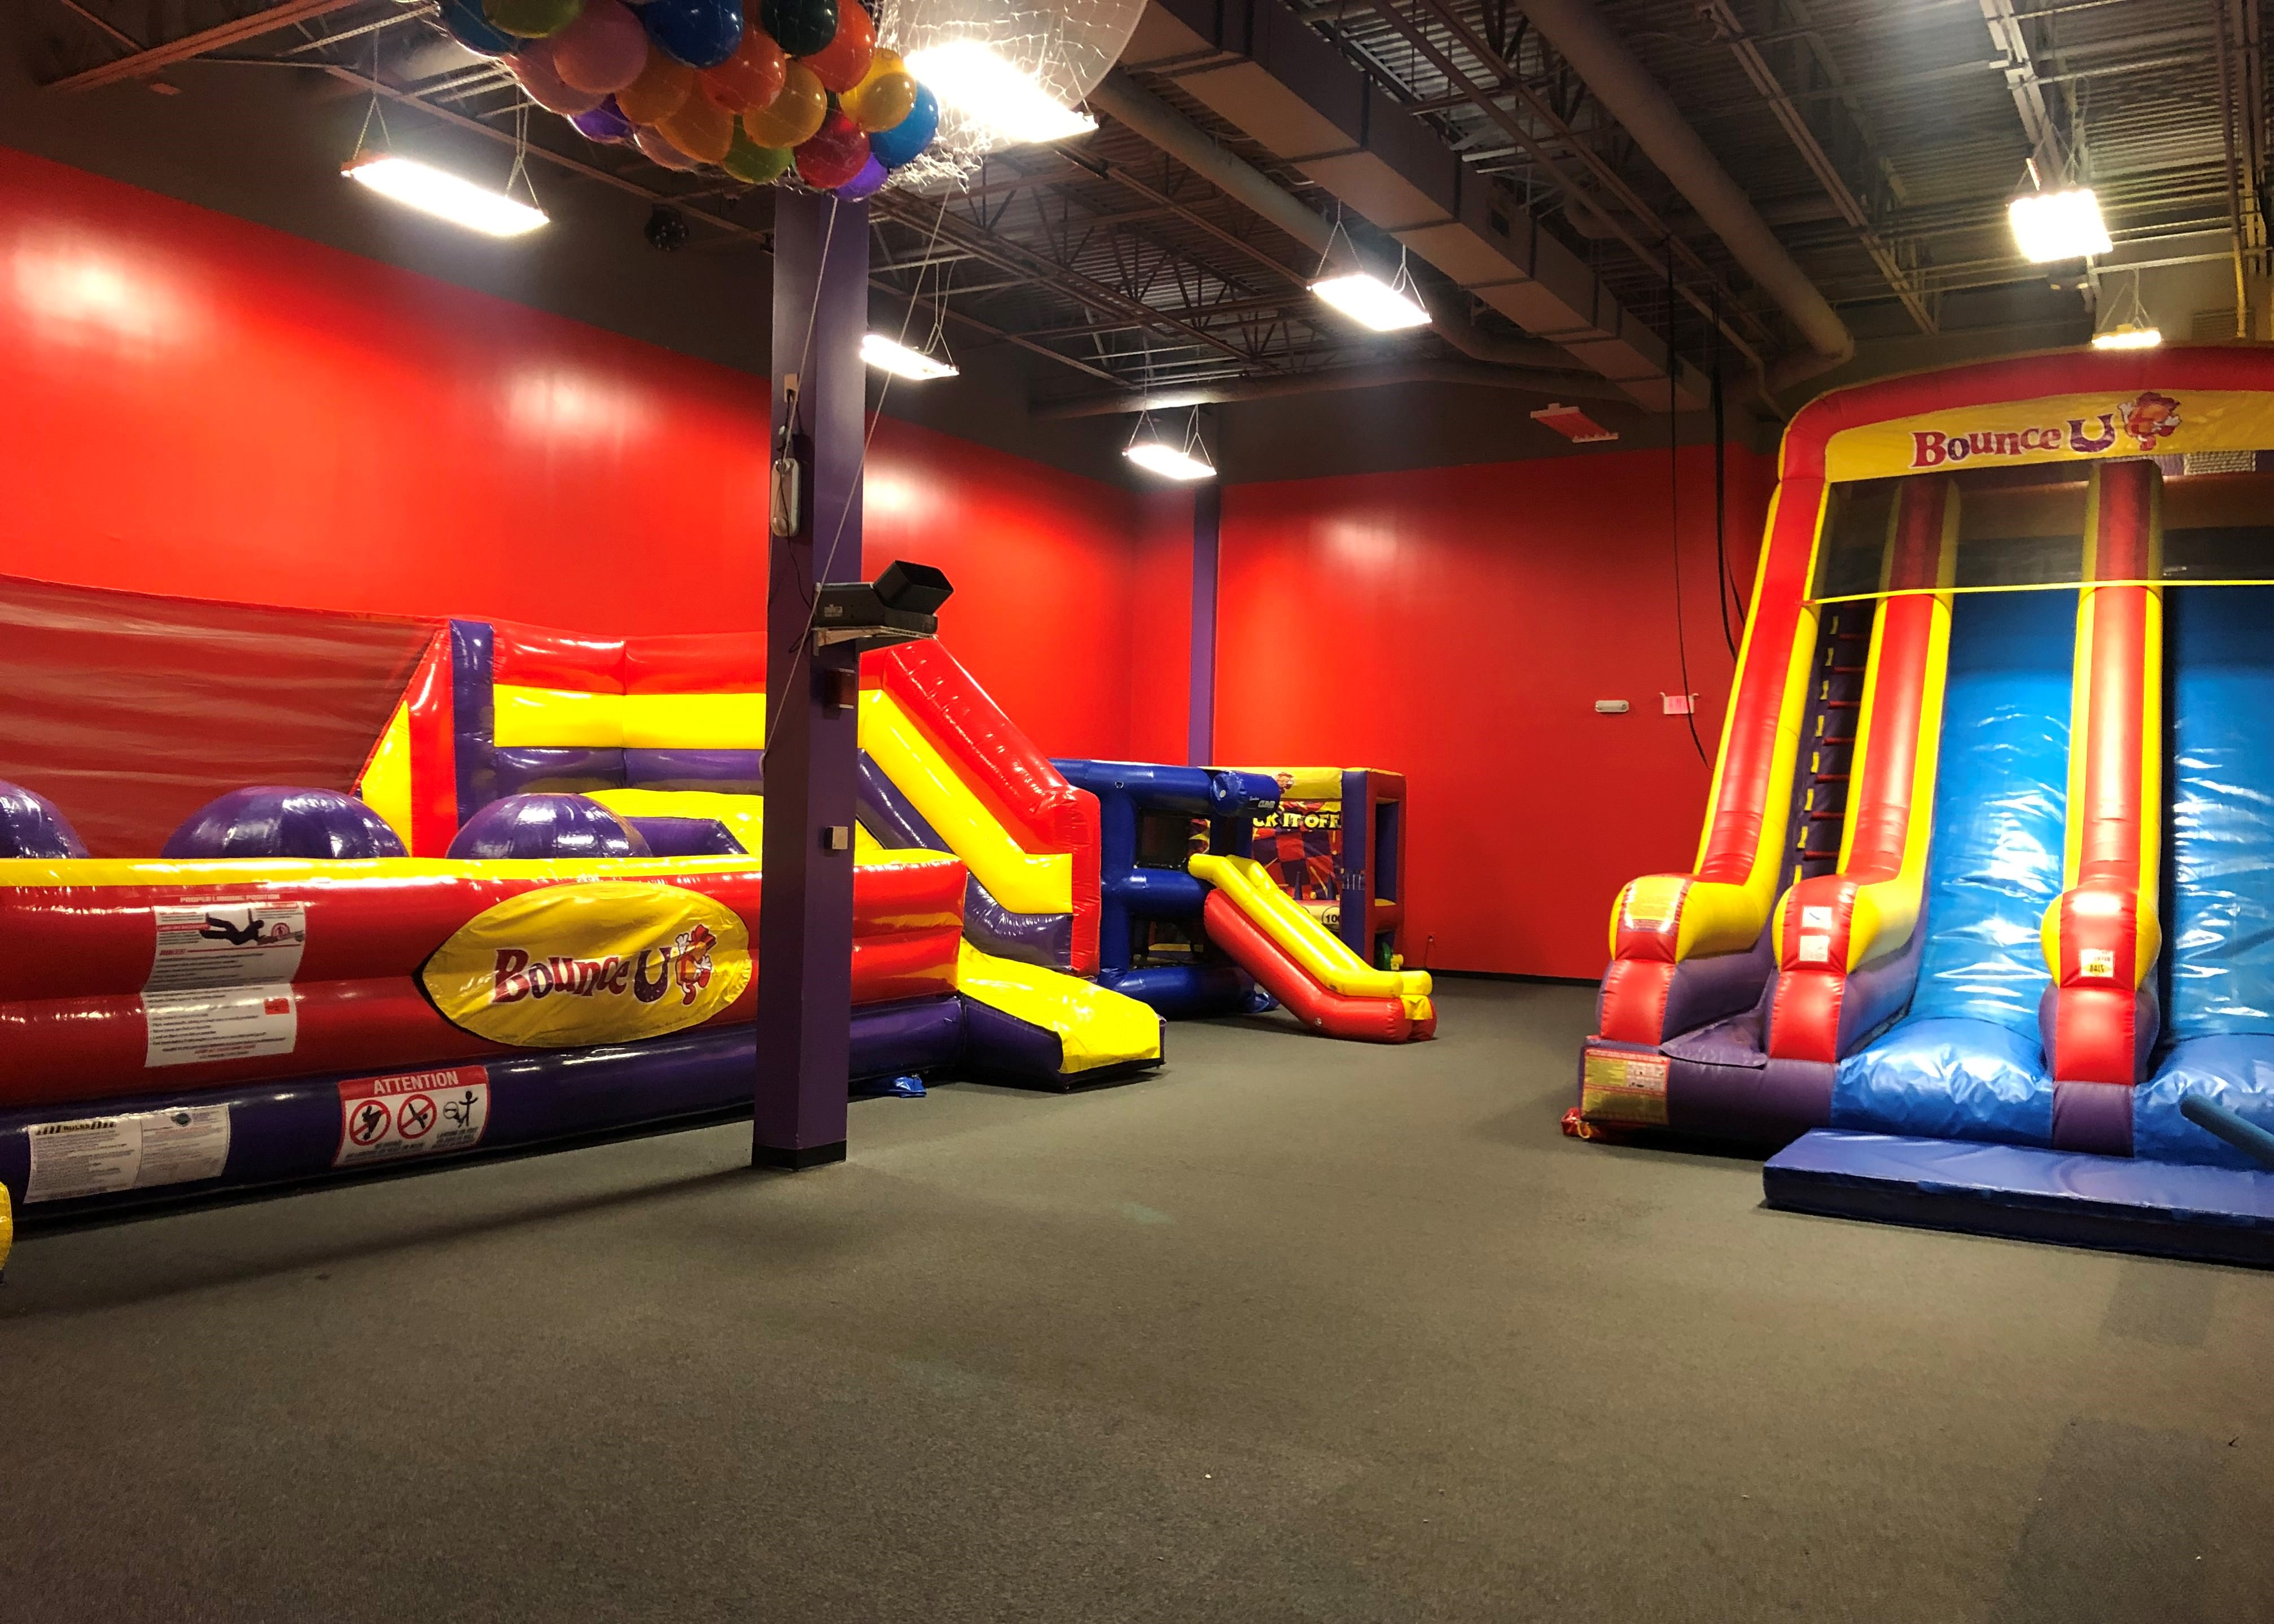 BounceU birthday party arena space with two large inflatable rides and two small inflatable games.